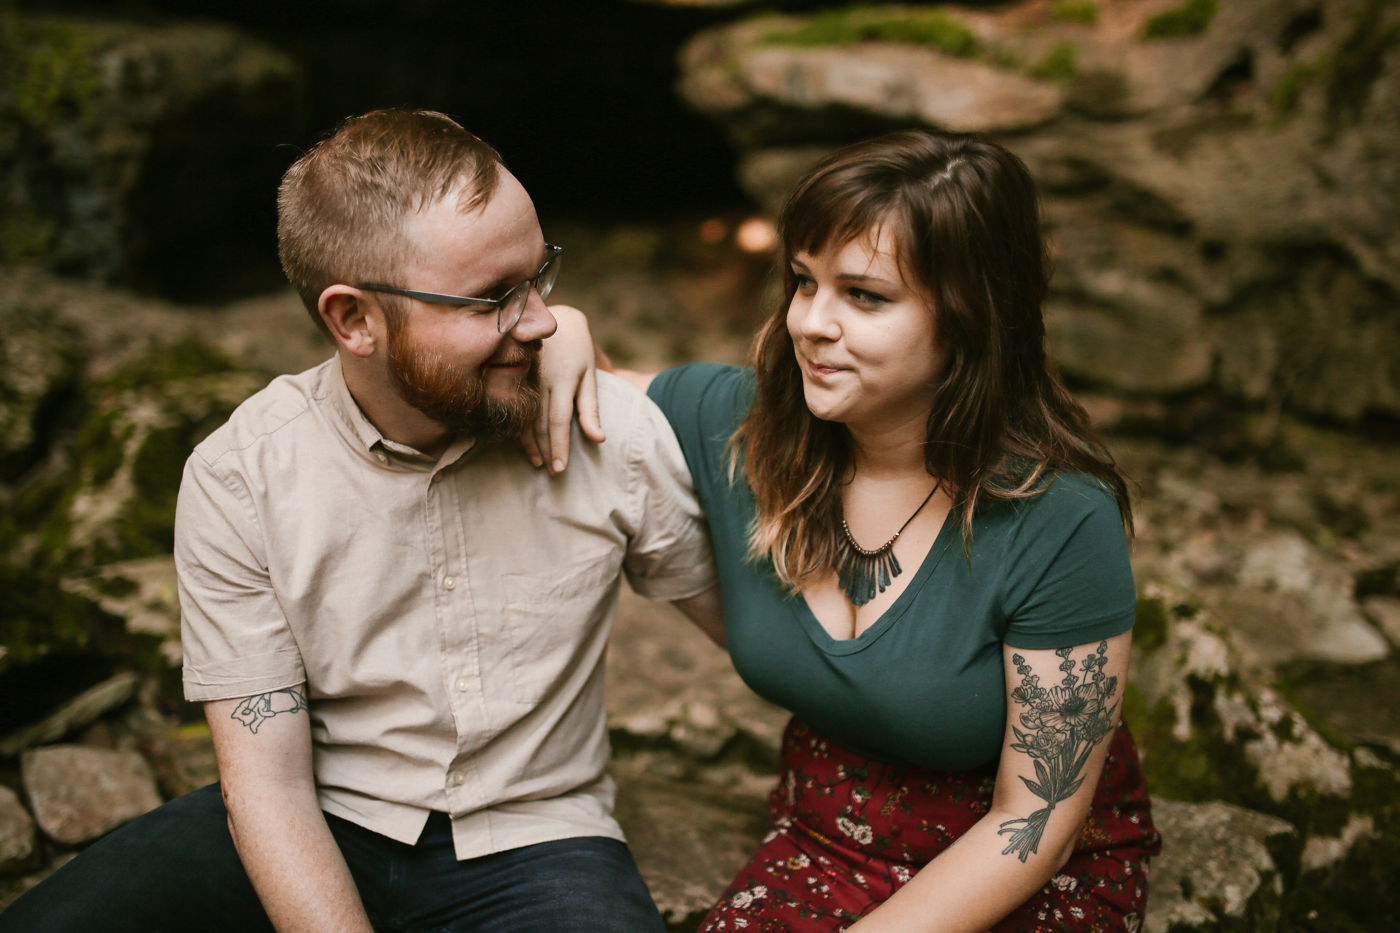 Eastern-Kentucky-Outdoors-Cave-Engagement-Photography-46.jpg